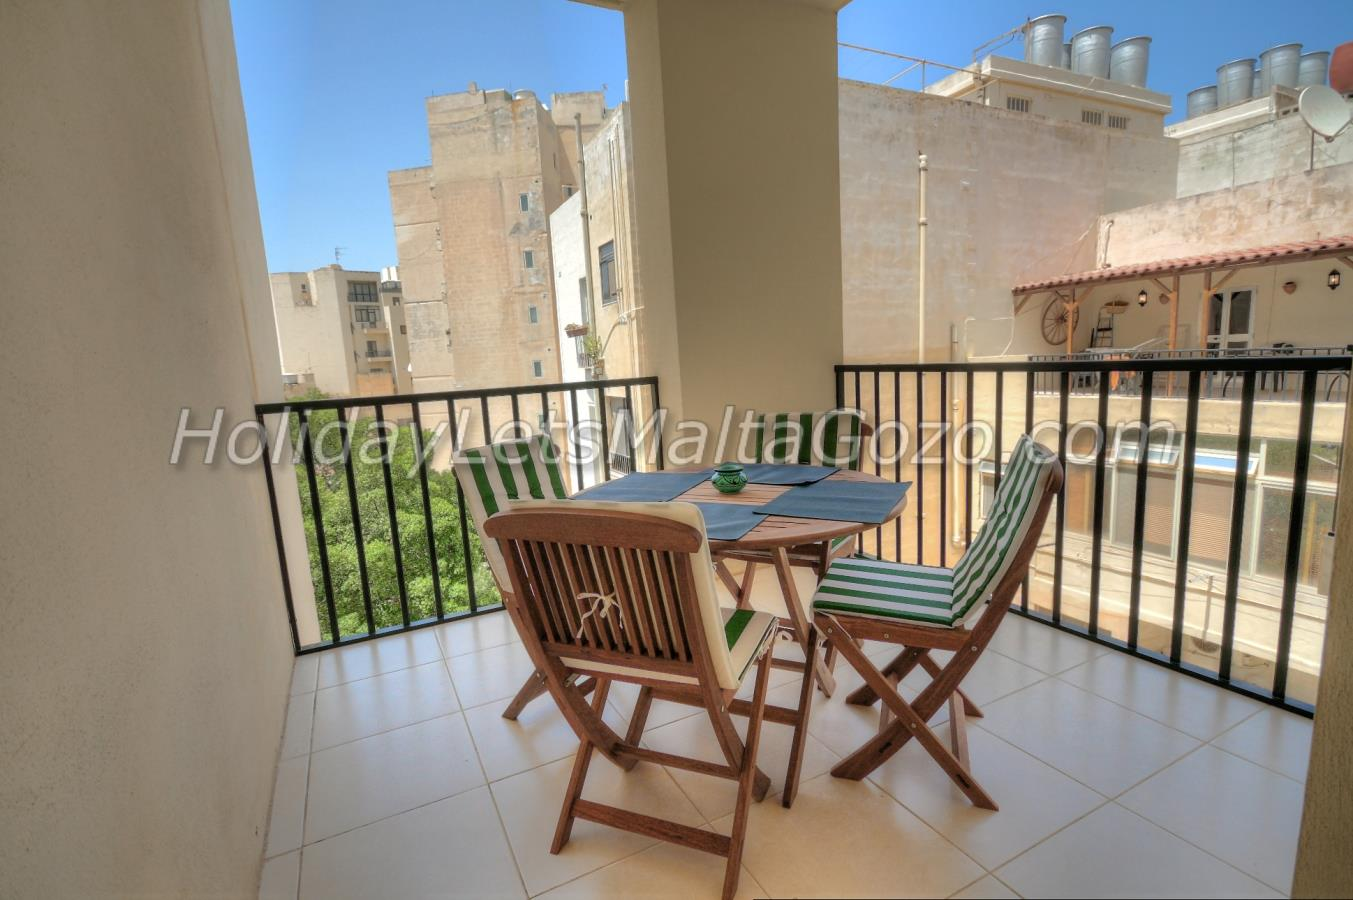 Terrace with Table & Chairs